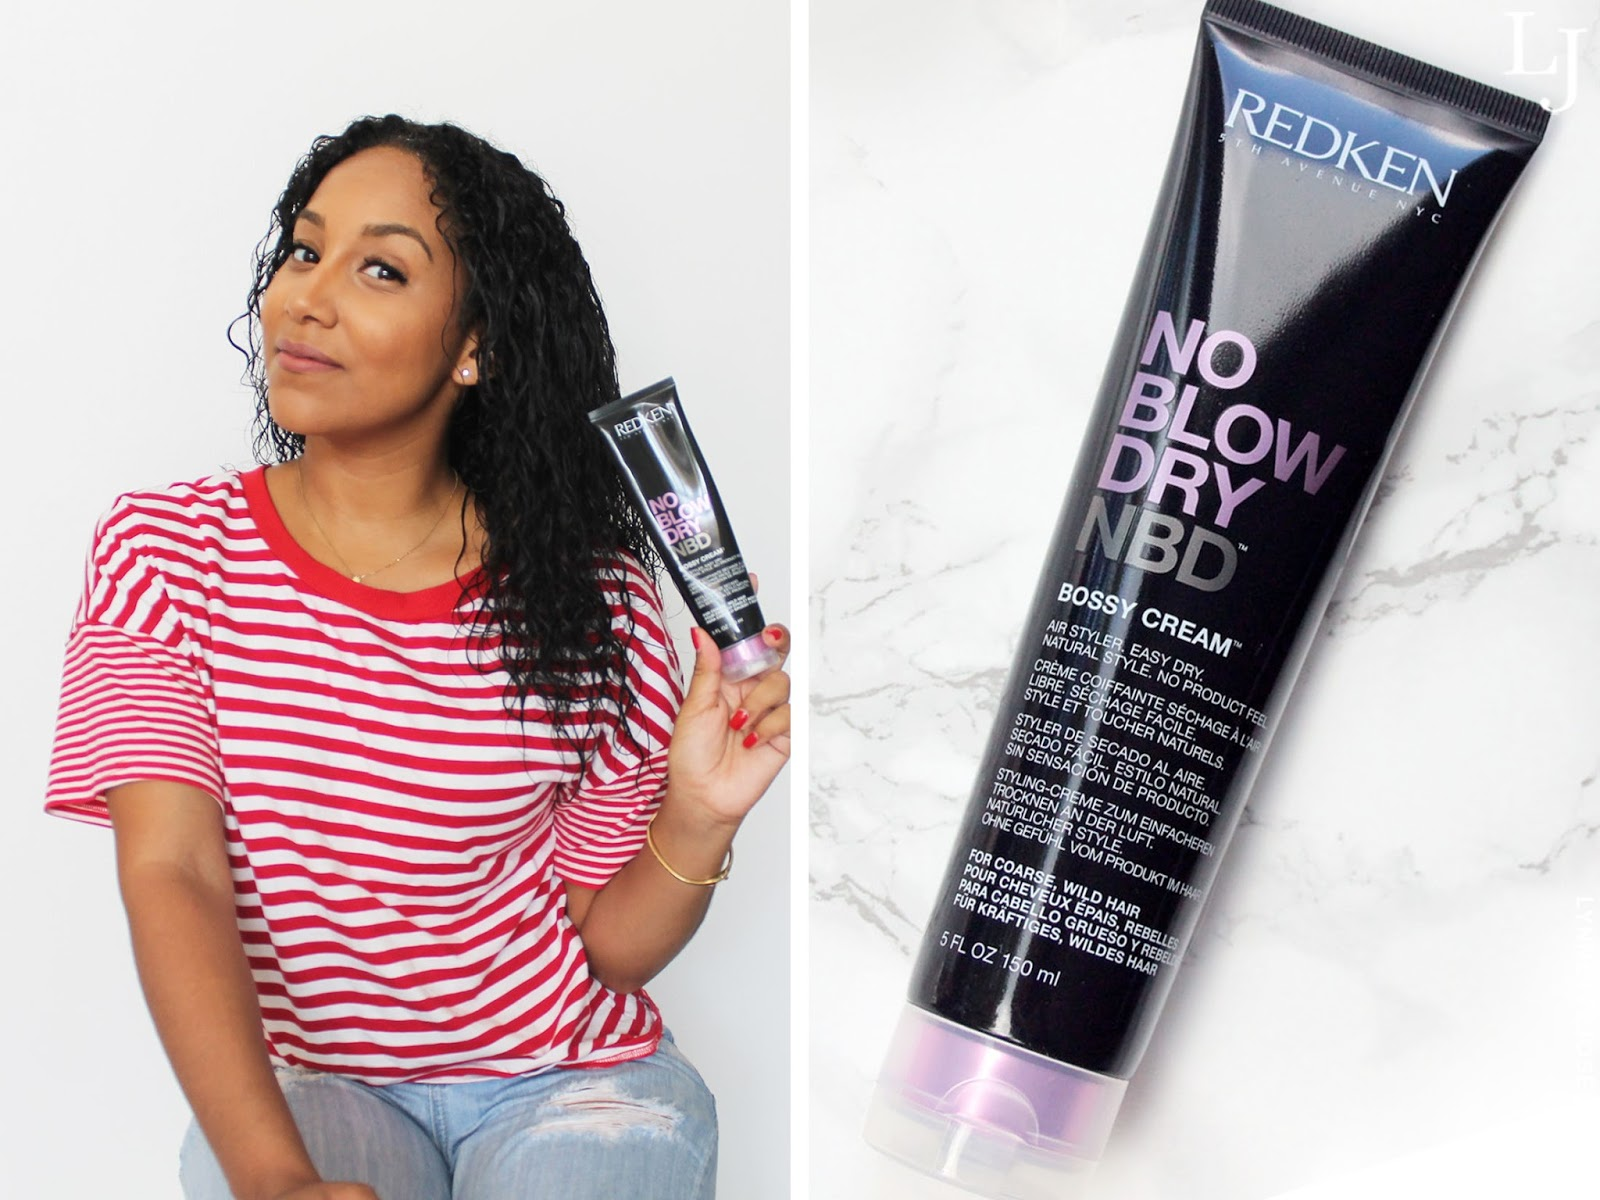 redken-no-blow-dry